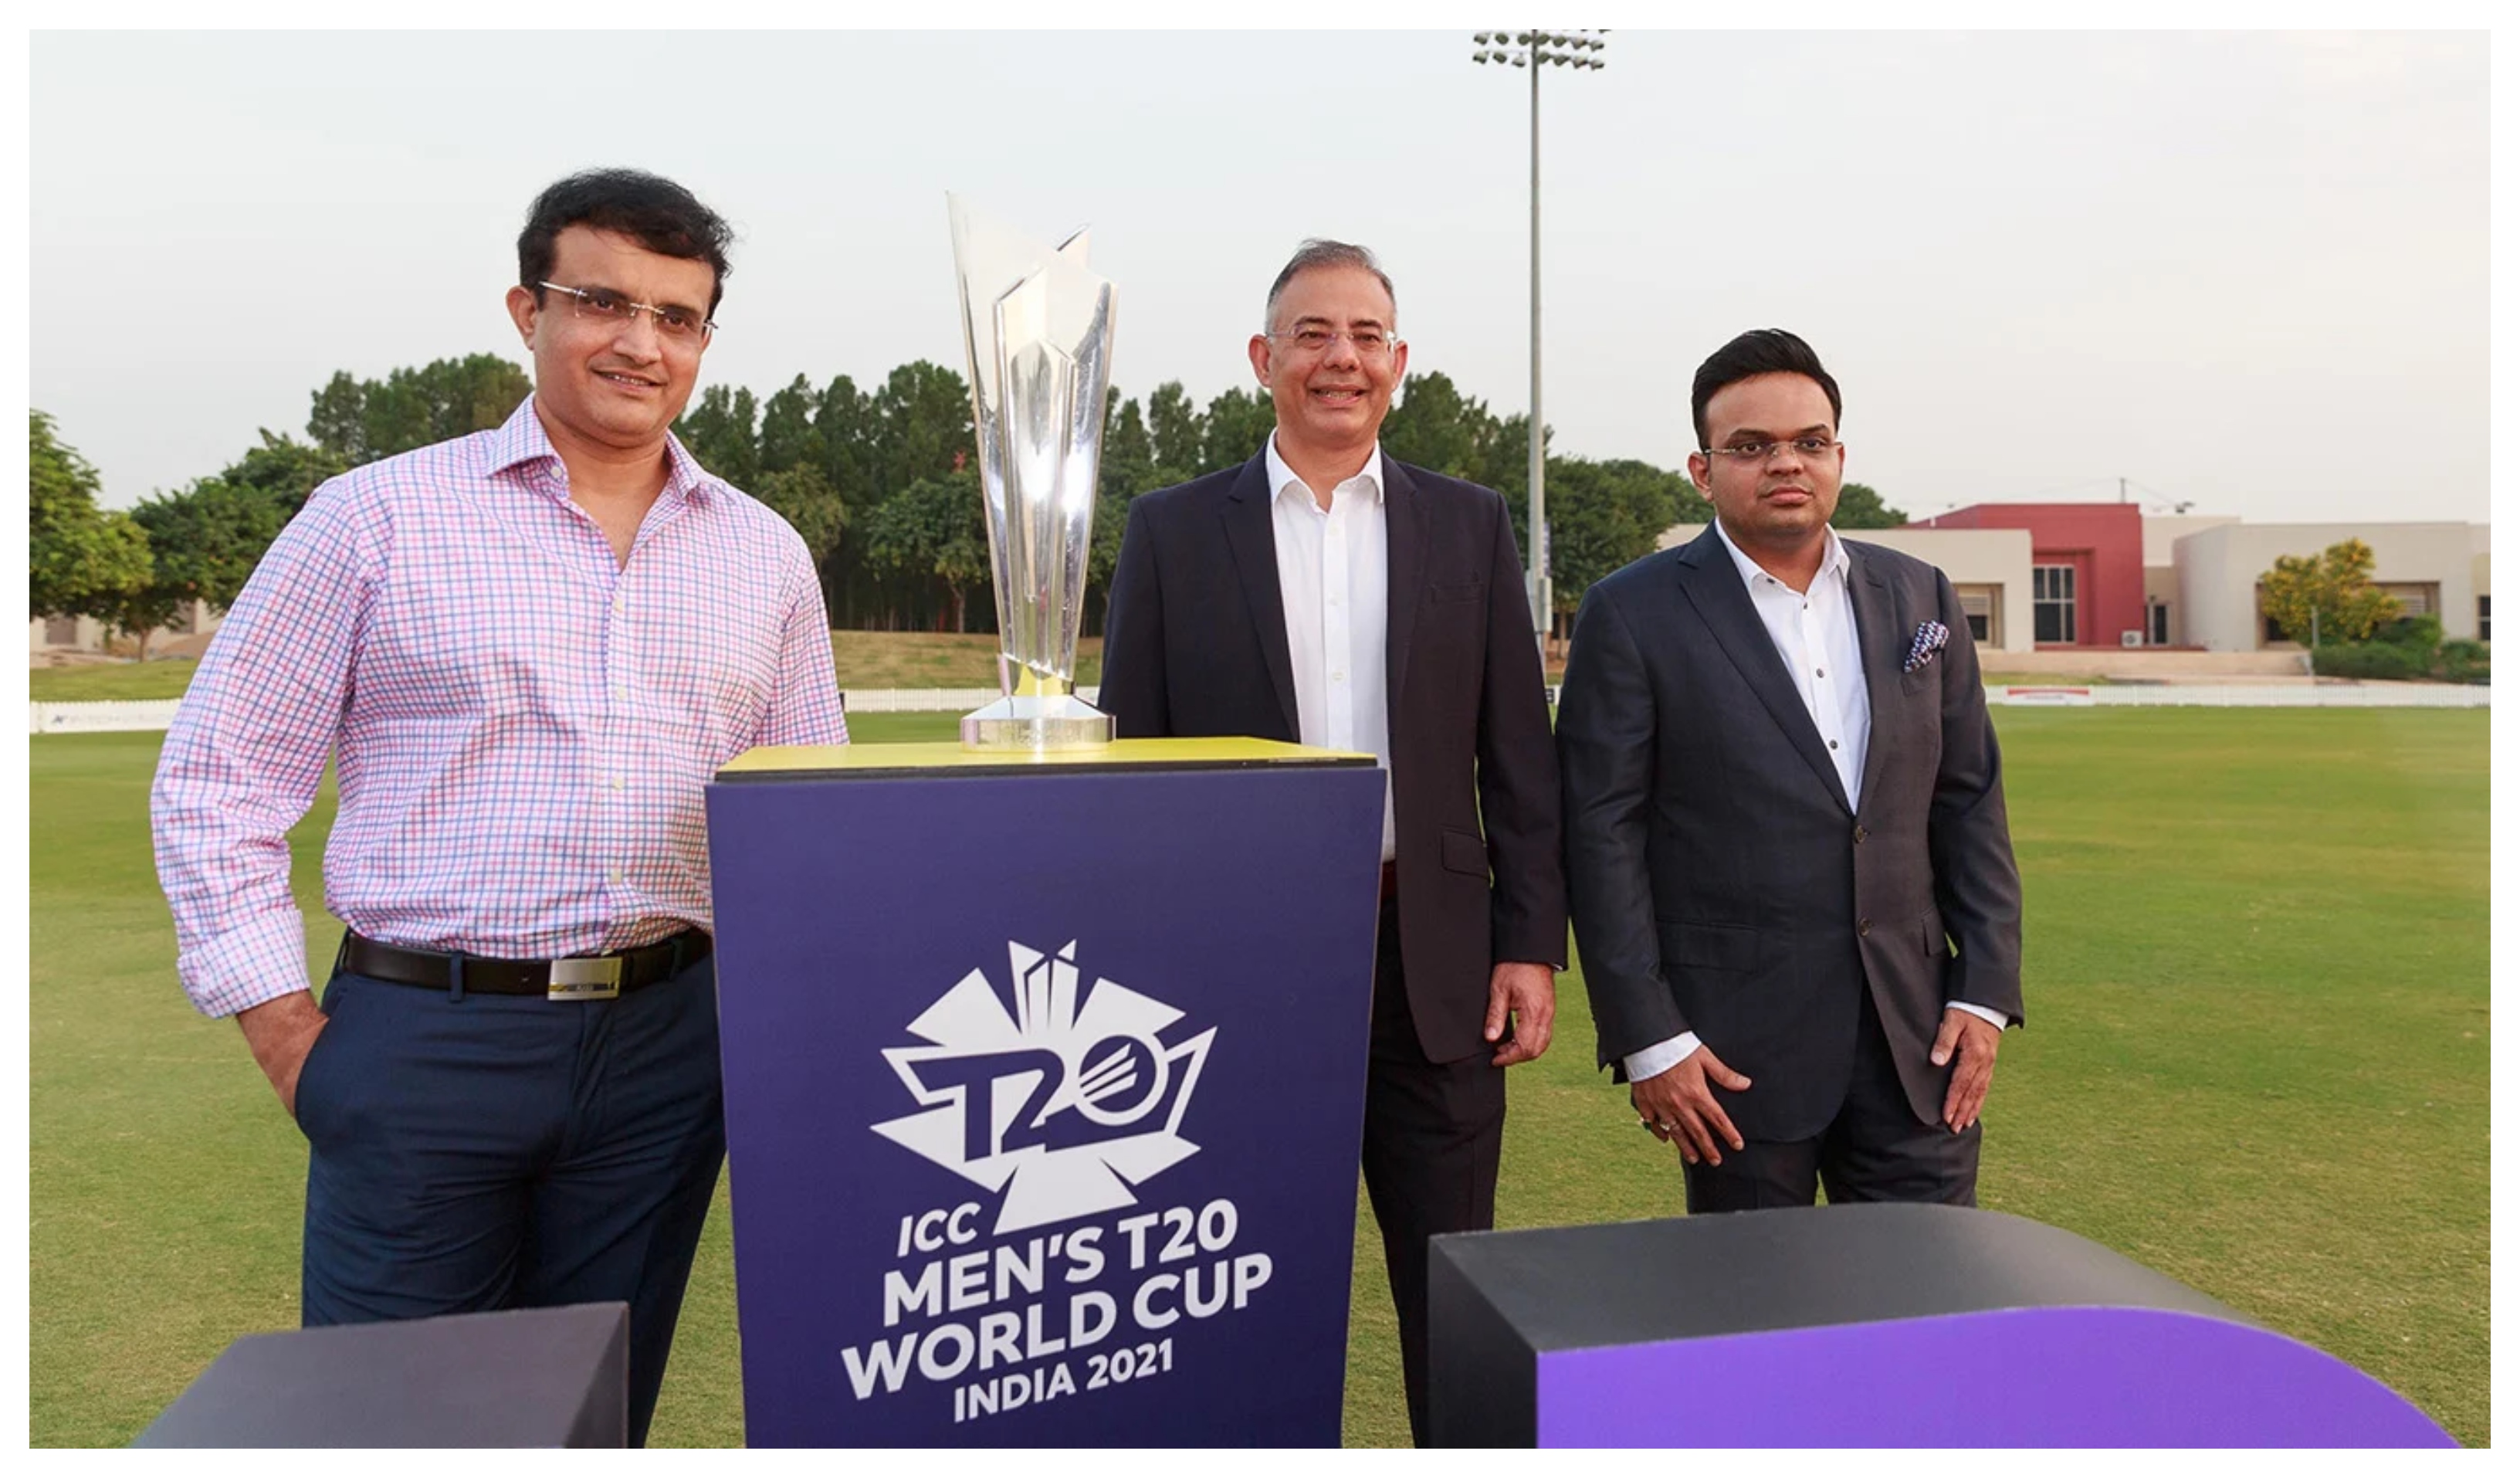 ICC has backup plans in place for the T20 World Cup 2021 | ICC/Twitter